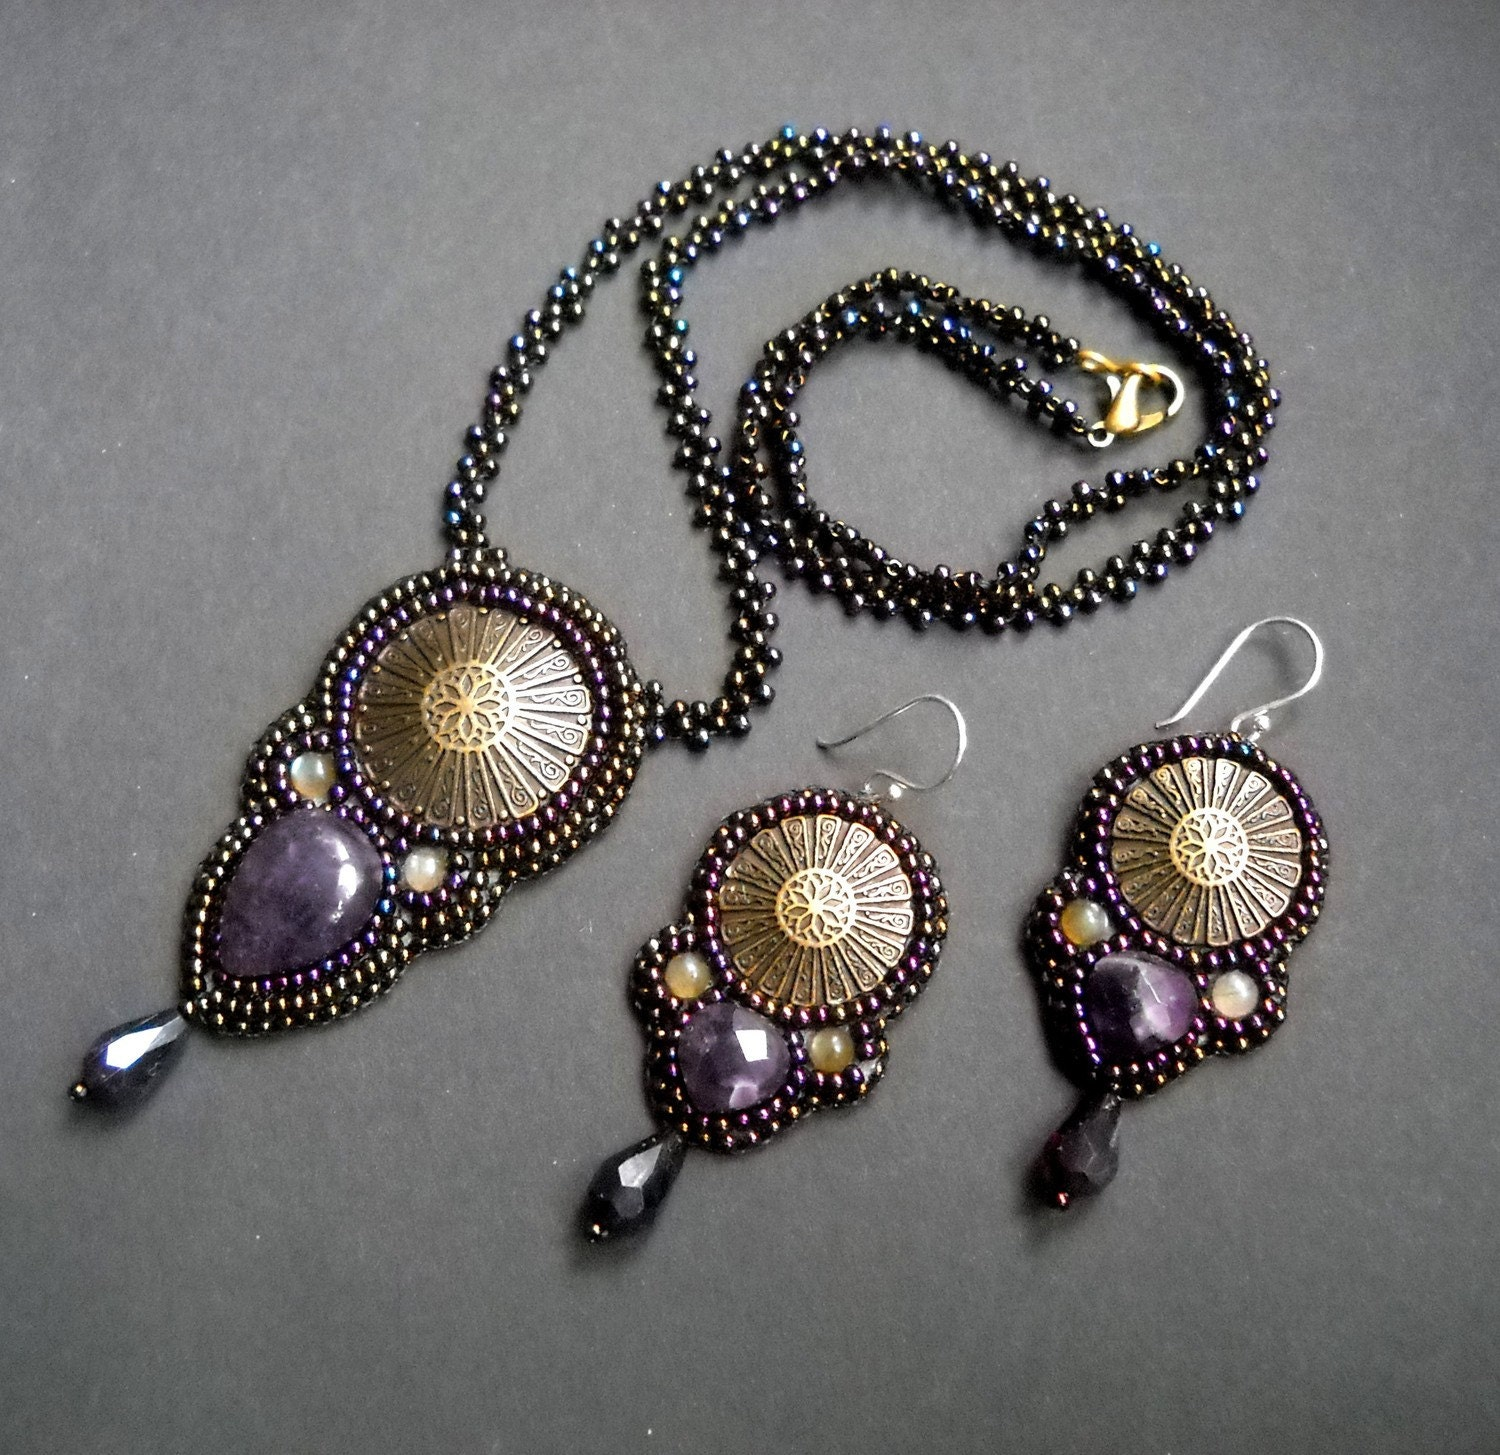 Embroidered Beads: Heather Moon Bead Embroidered Necklace And Earrings Set With